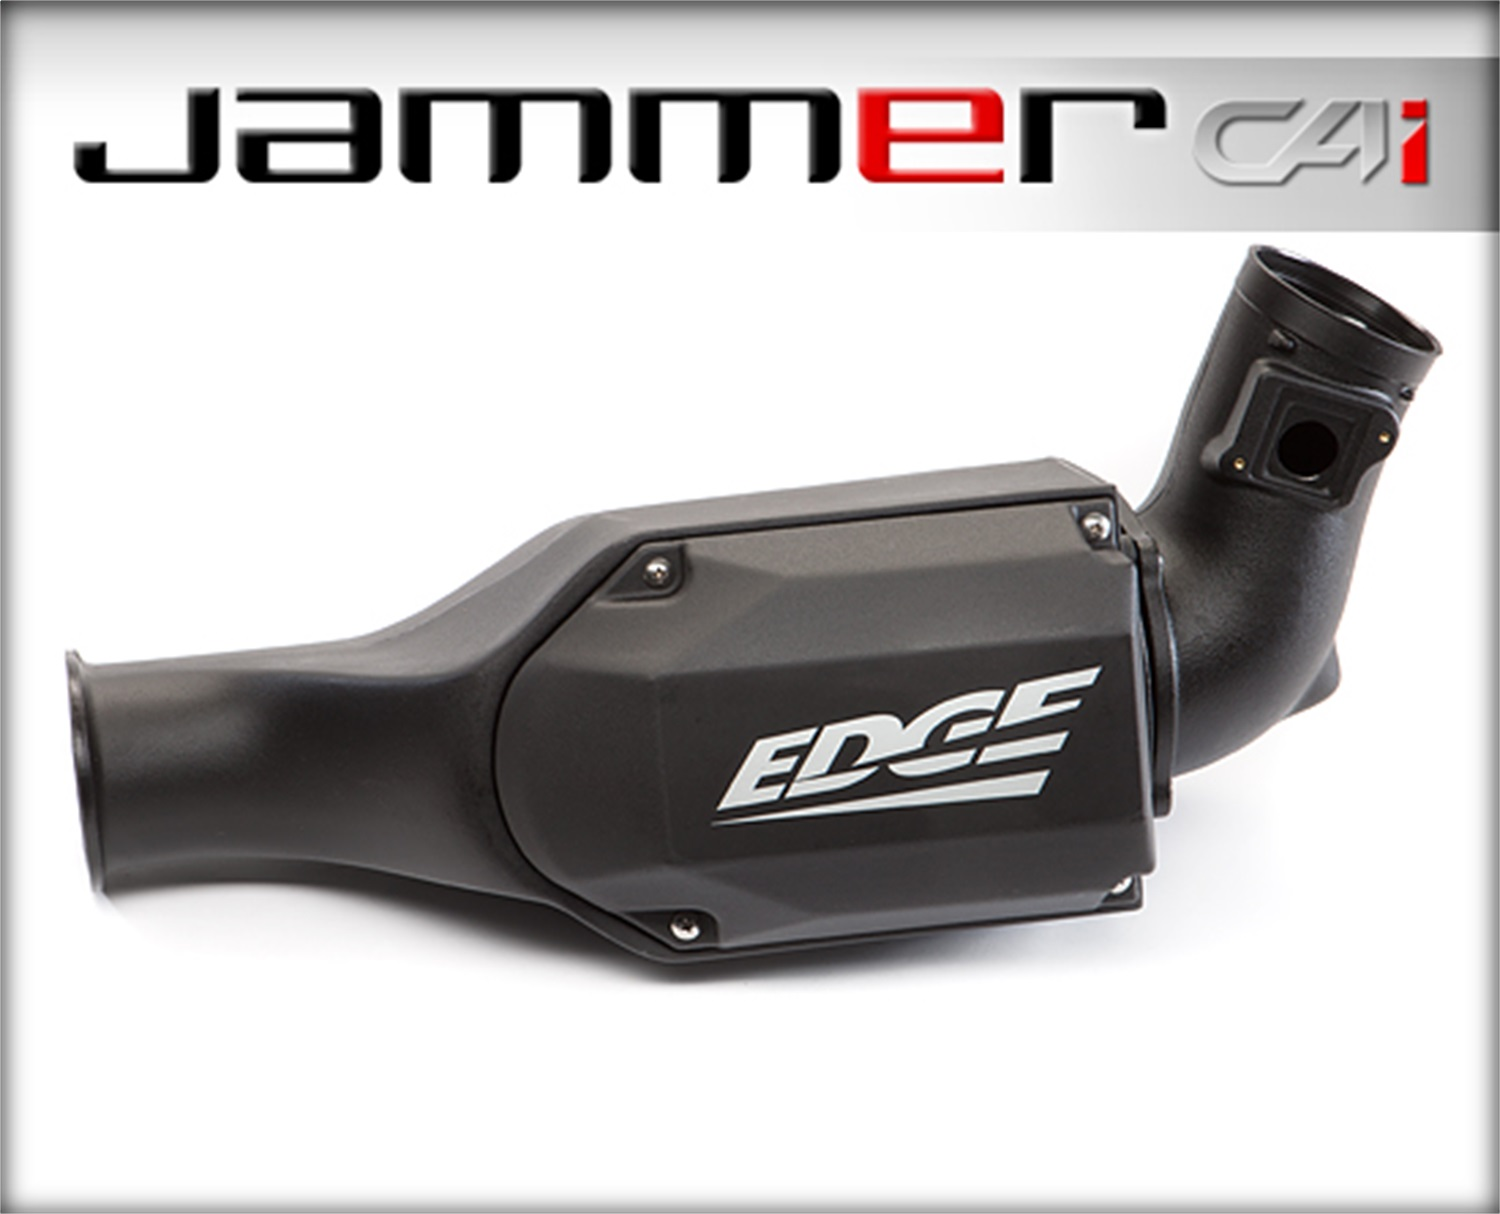 Edge Products 18155-D JAMMER CAI FORD 2003-2007 6.0L (Dry Filter)